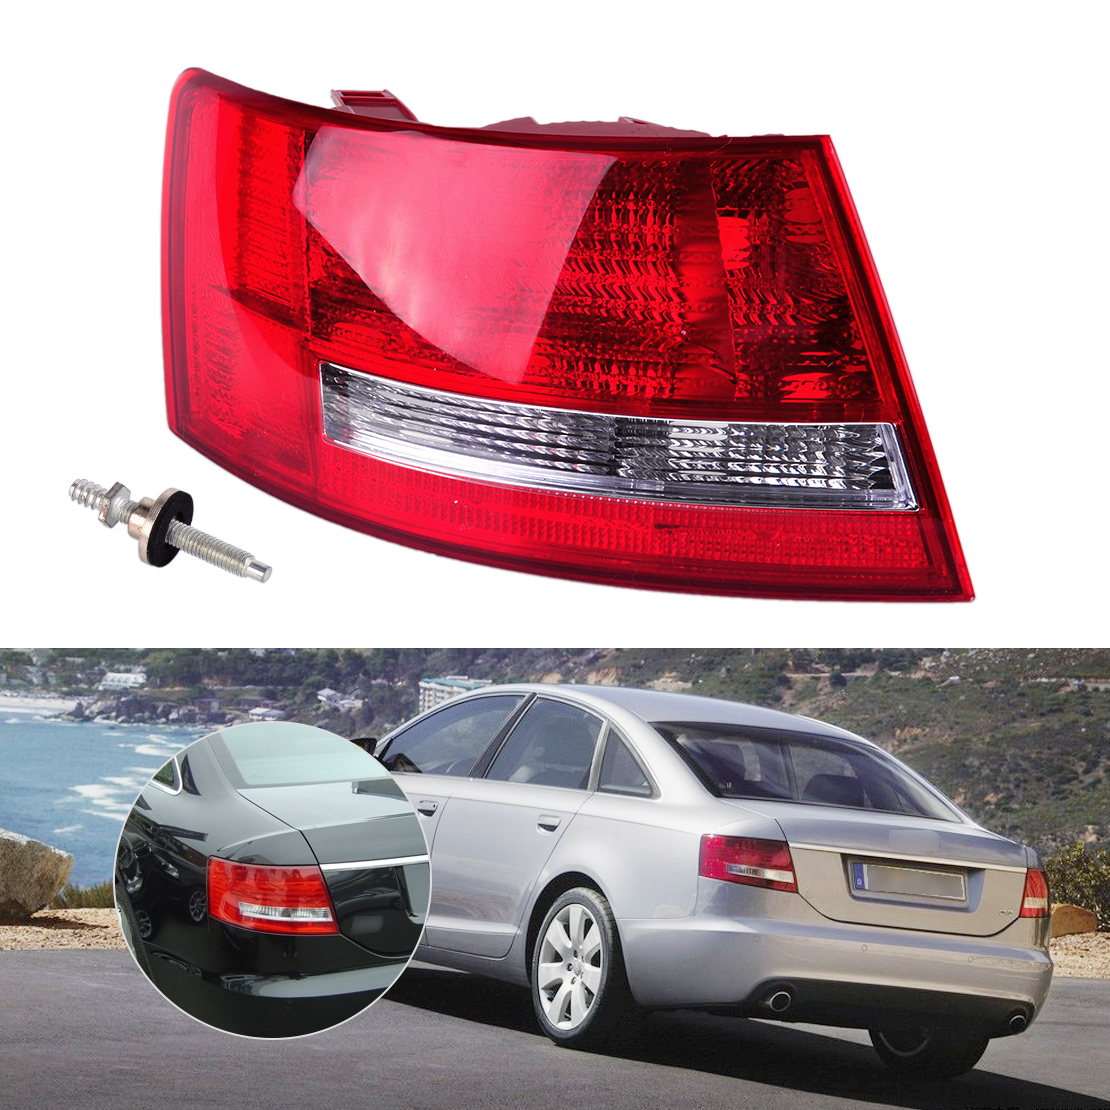 DWCX Rear Tail Left Light Taillight Assembly Lamp Housing without Bulb 4F5 945 095 L for Audi A6 /A6 Quattro Sedan 2005 2006 -08 ежедневник nazareno gabrielli flatter а5 145 205 мм синий на 2014 год